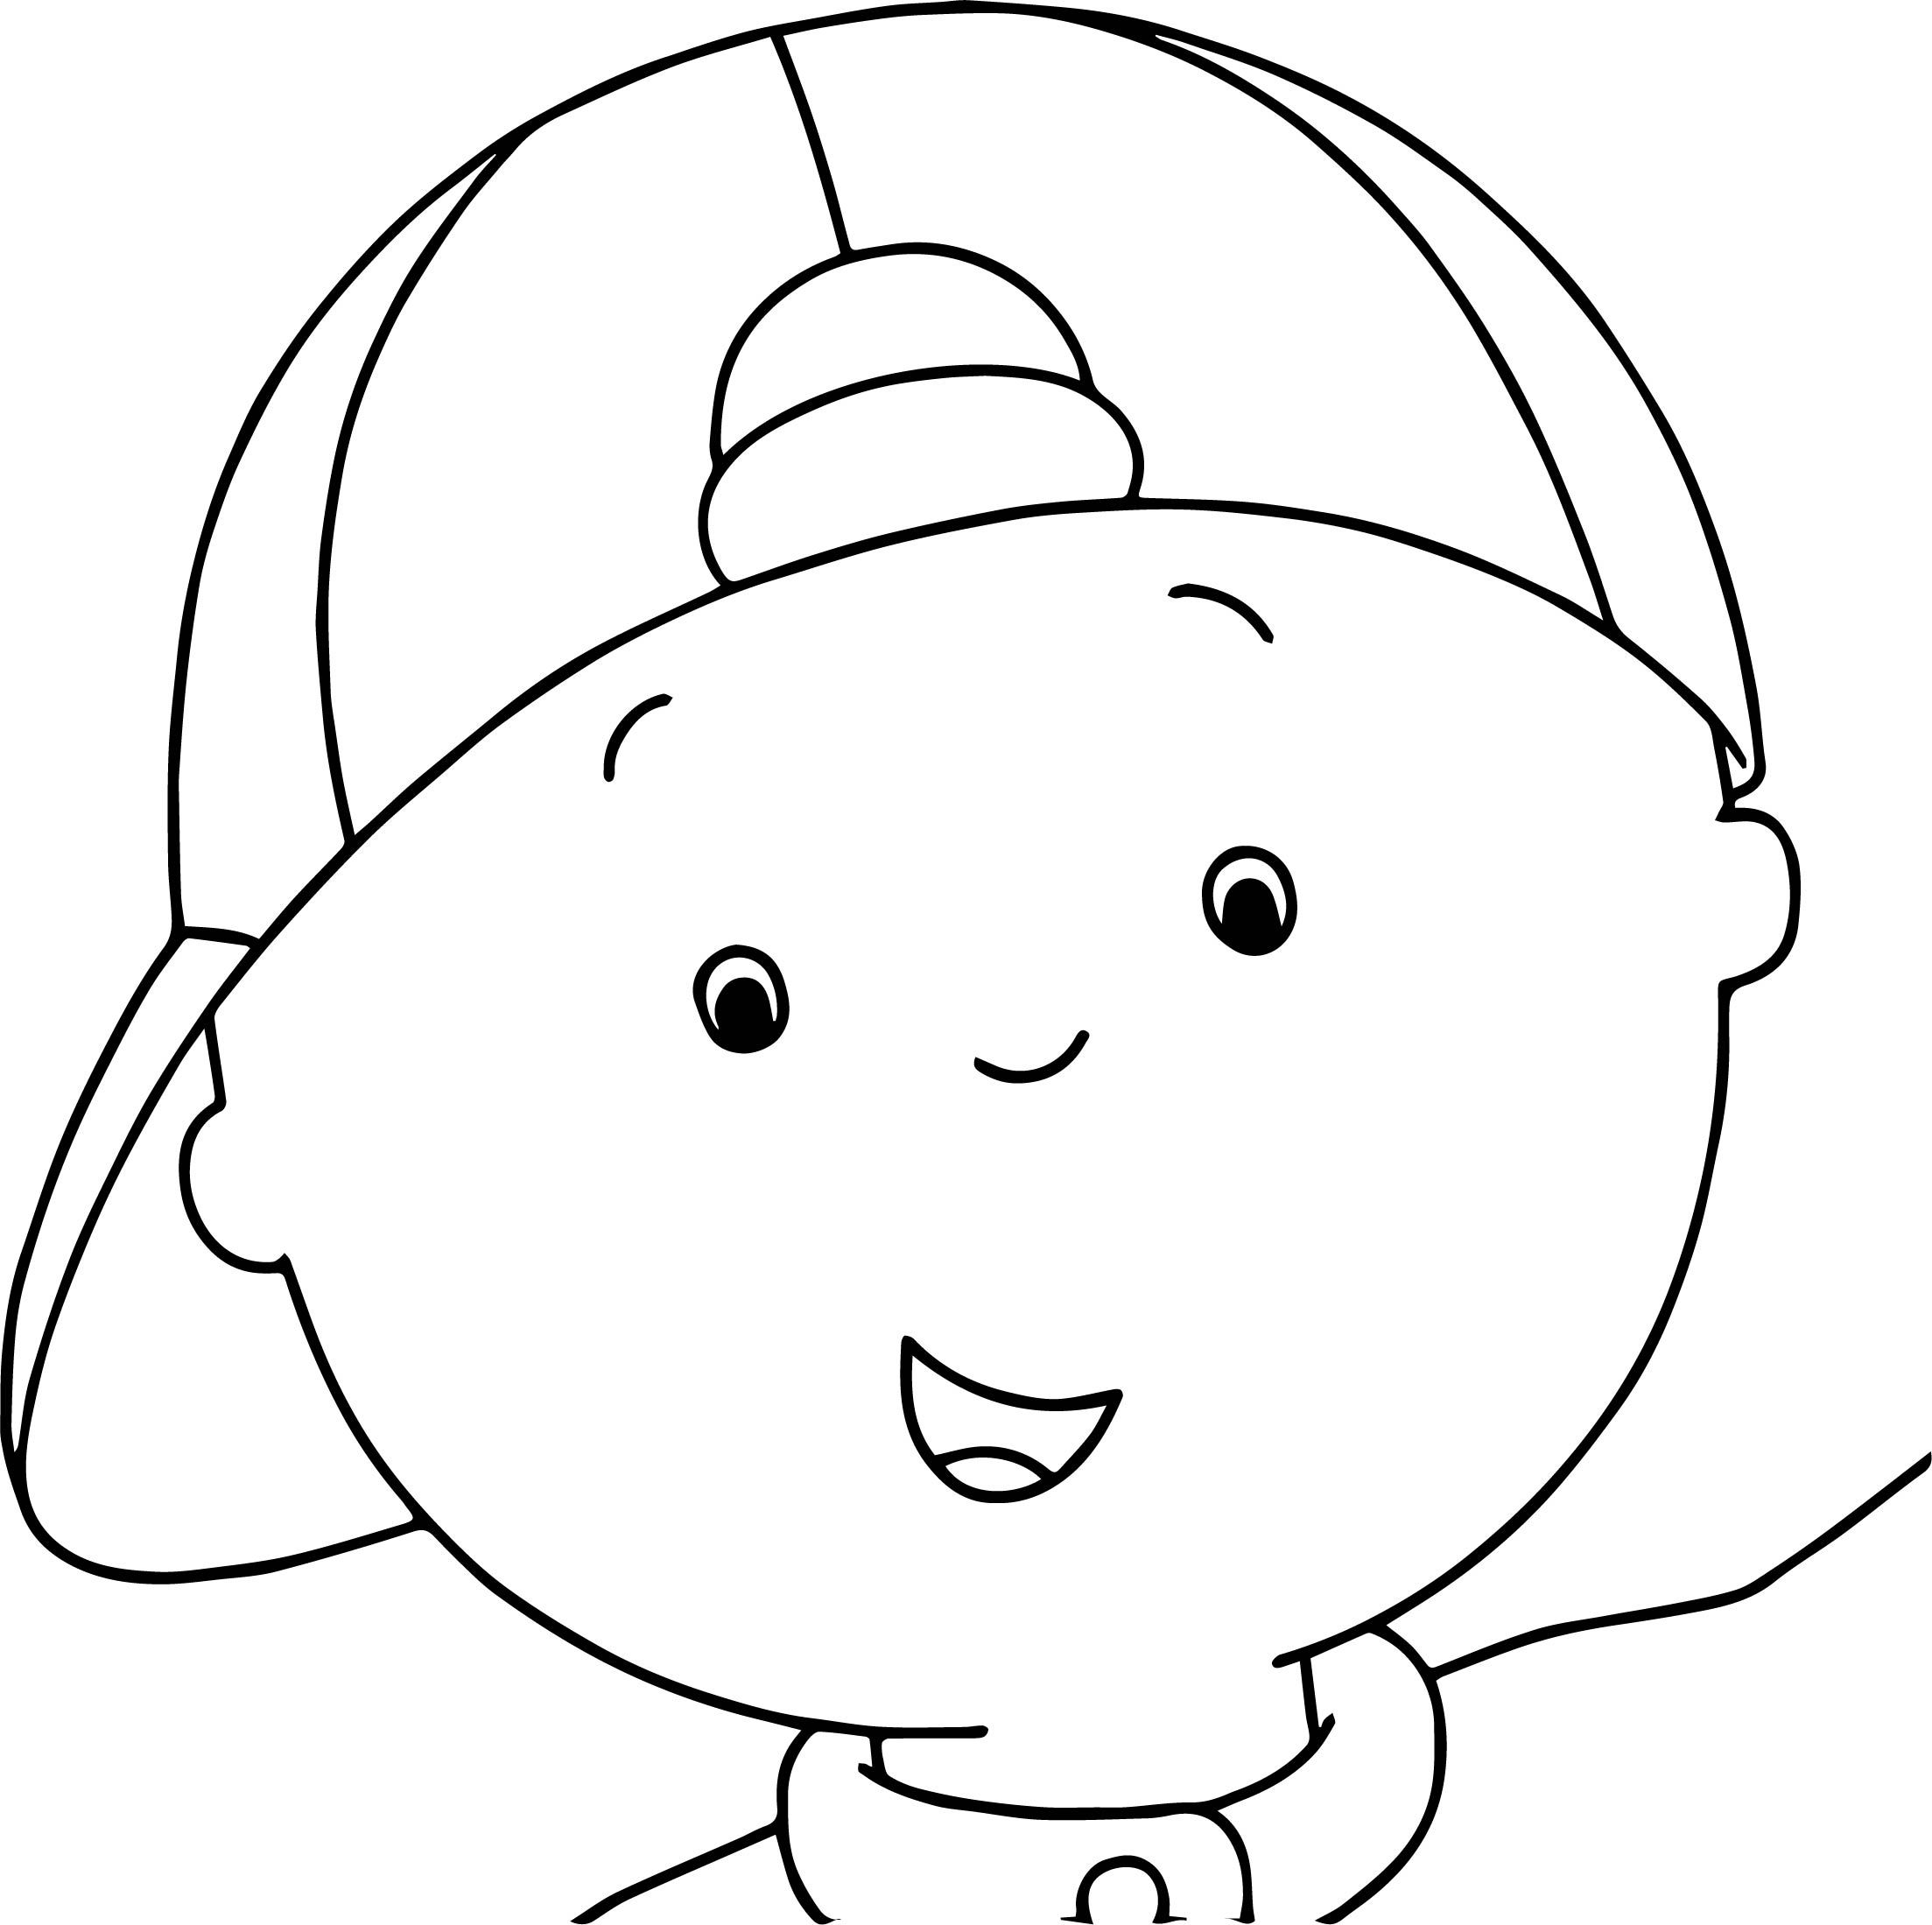 awesome Caillou Face Coloring Page Coloring pages, Caillou